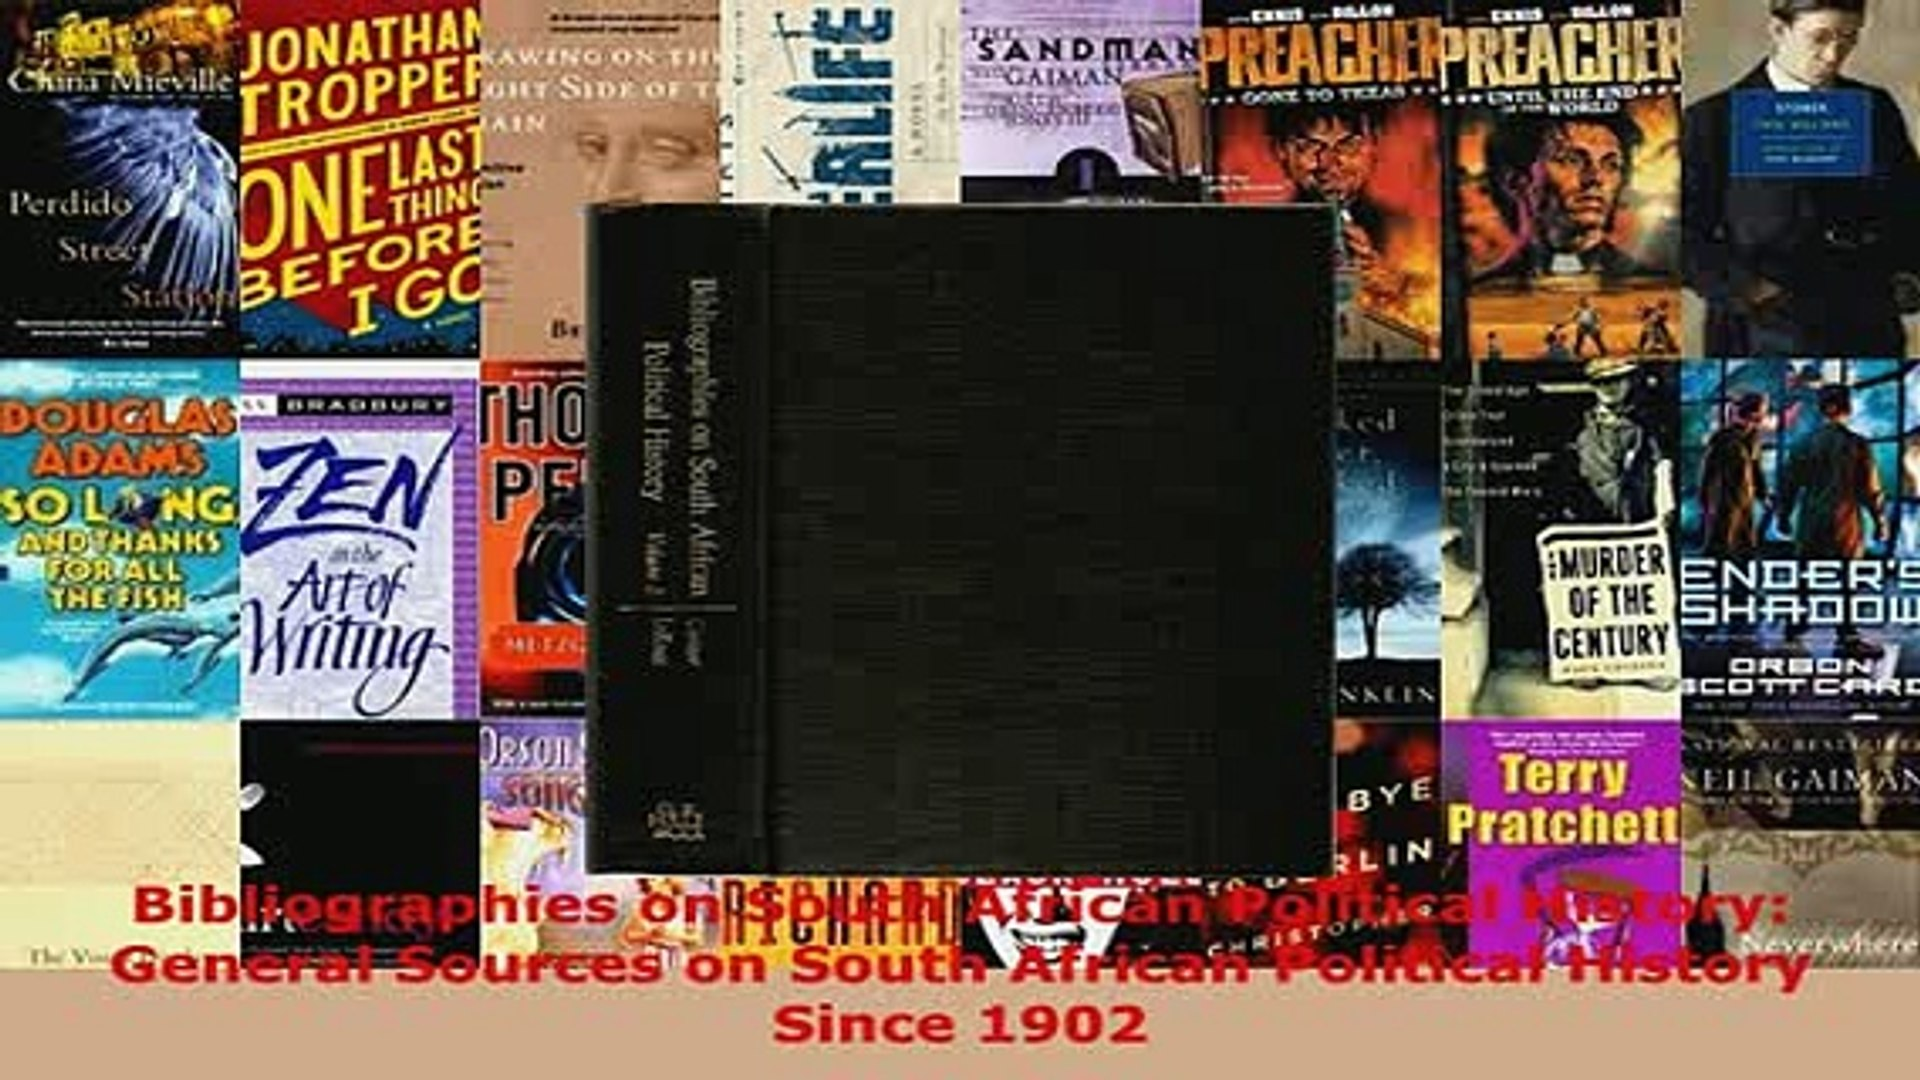 PDF  Bibliographies on South African Political History General Sources on South African Download Onl